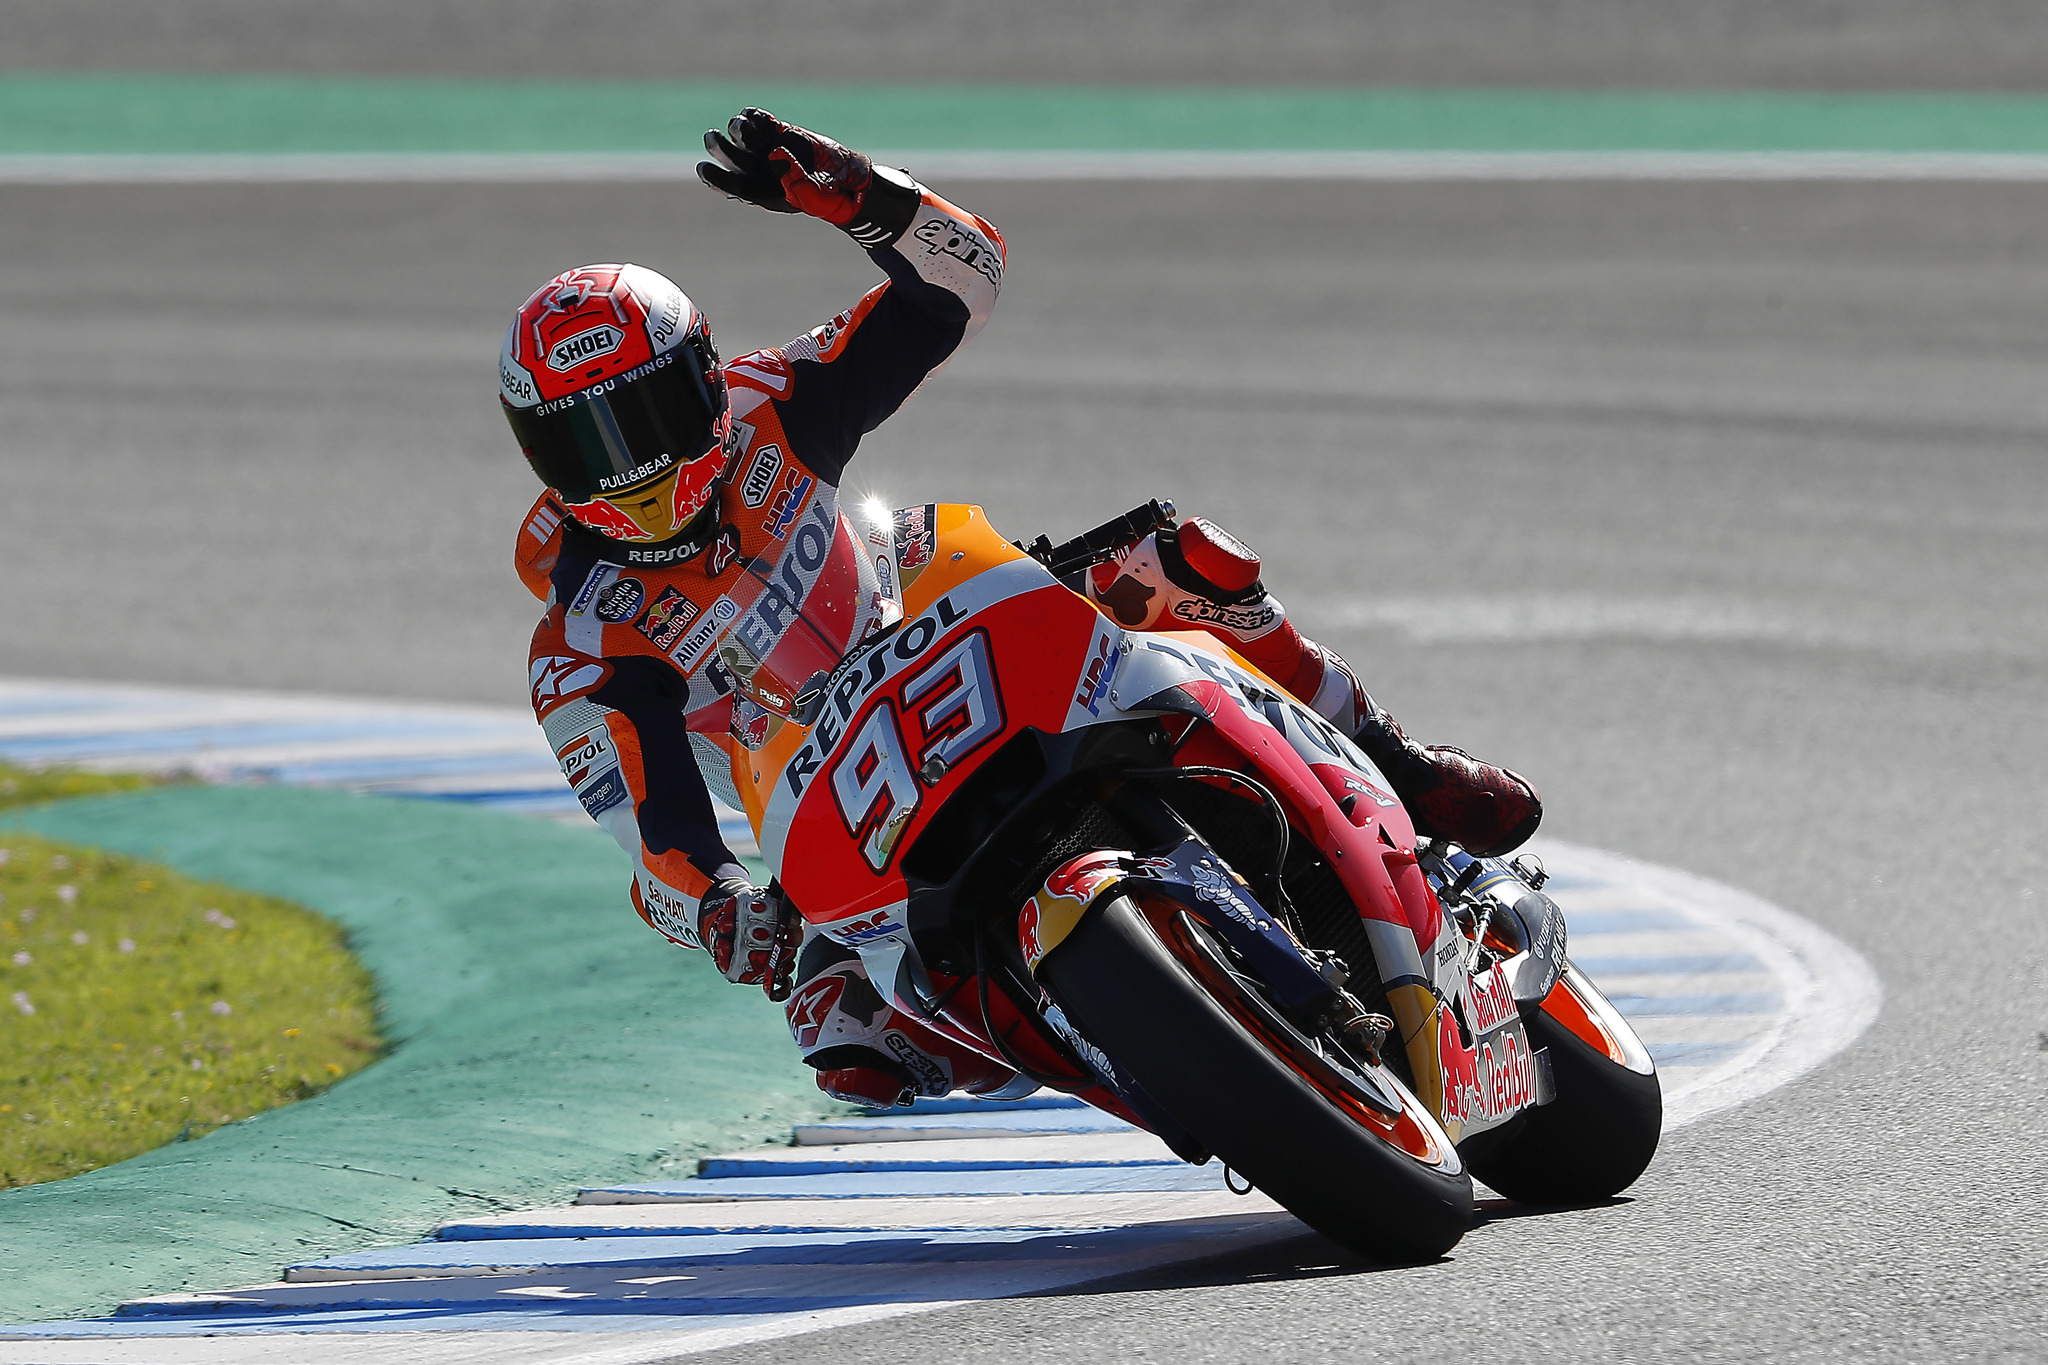 Japanese MotoGP: Who will spoil Marquez's home parade for Honda?